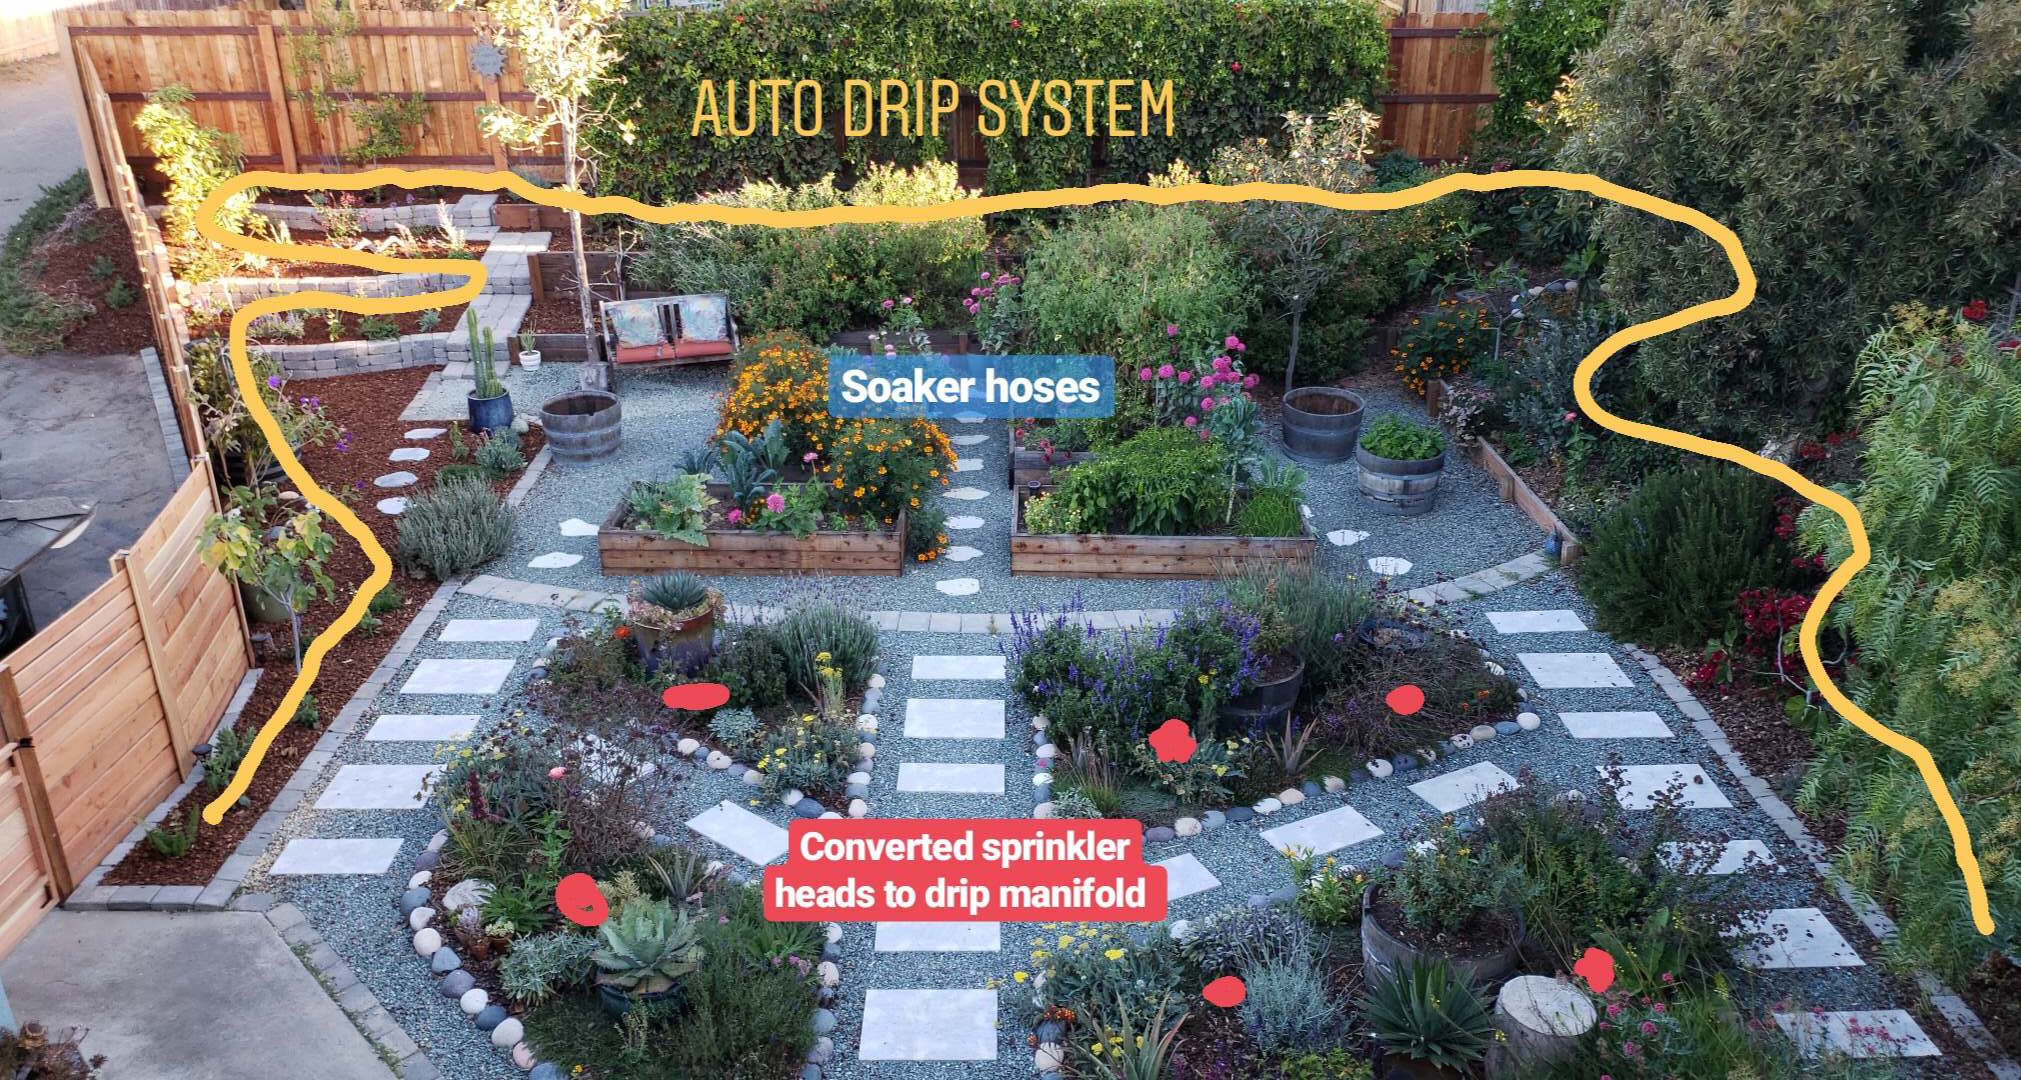 """A photo of a front yard garden, as shown from the roof. It has a yellow line drawn around the outside perimeter of the yard, labelled """"auto drip system"""". There are pink dots in other areas with plants, labelled """"converted sprinkler heads to drip manifold"""". A label that reads """"soaker hoses"""" is placed over the raised beds in the photo."""